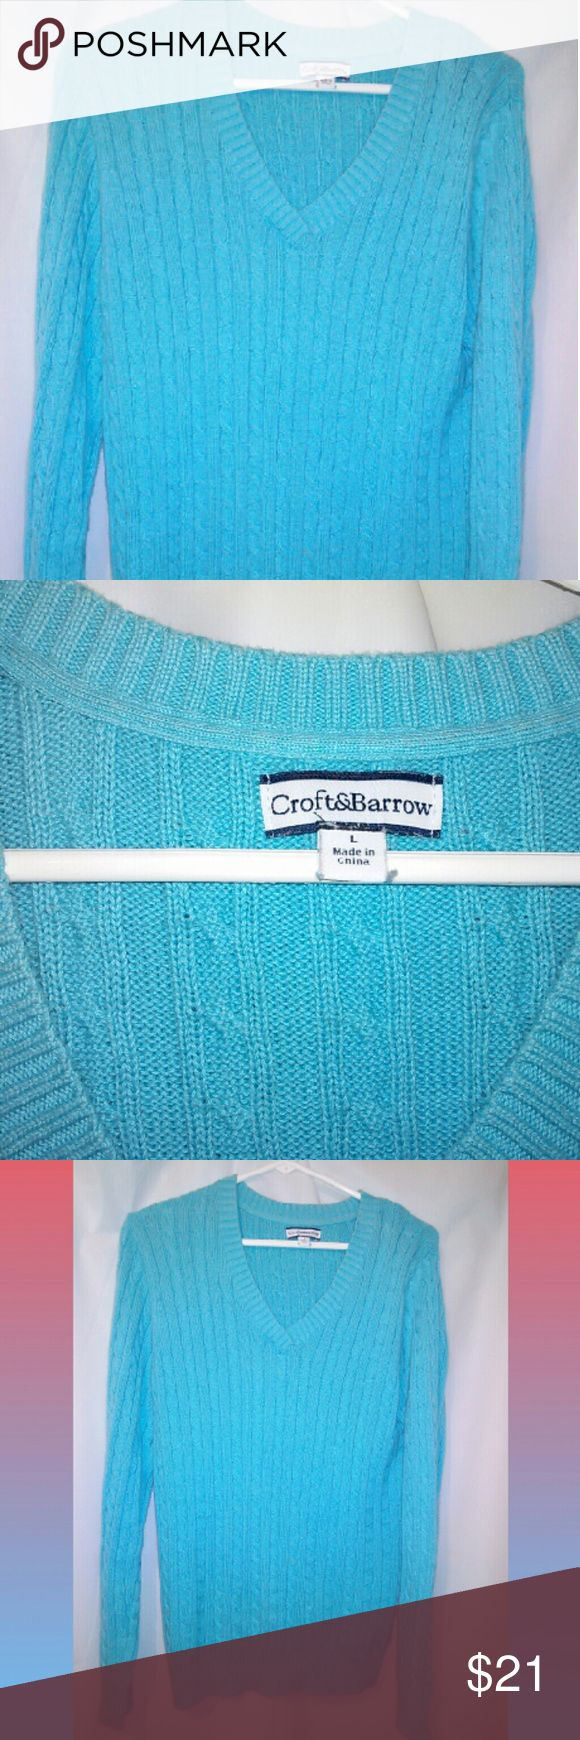 Turquoise Blue Croft and Barrow Cable Sweater~L Gorgeous Turquoise Blue v-neck cable knit sweater,in like new condition! No hangar marks,only hung to photograph. Women's large. Only wore once! croft & barrow Sweaters V-Necks